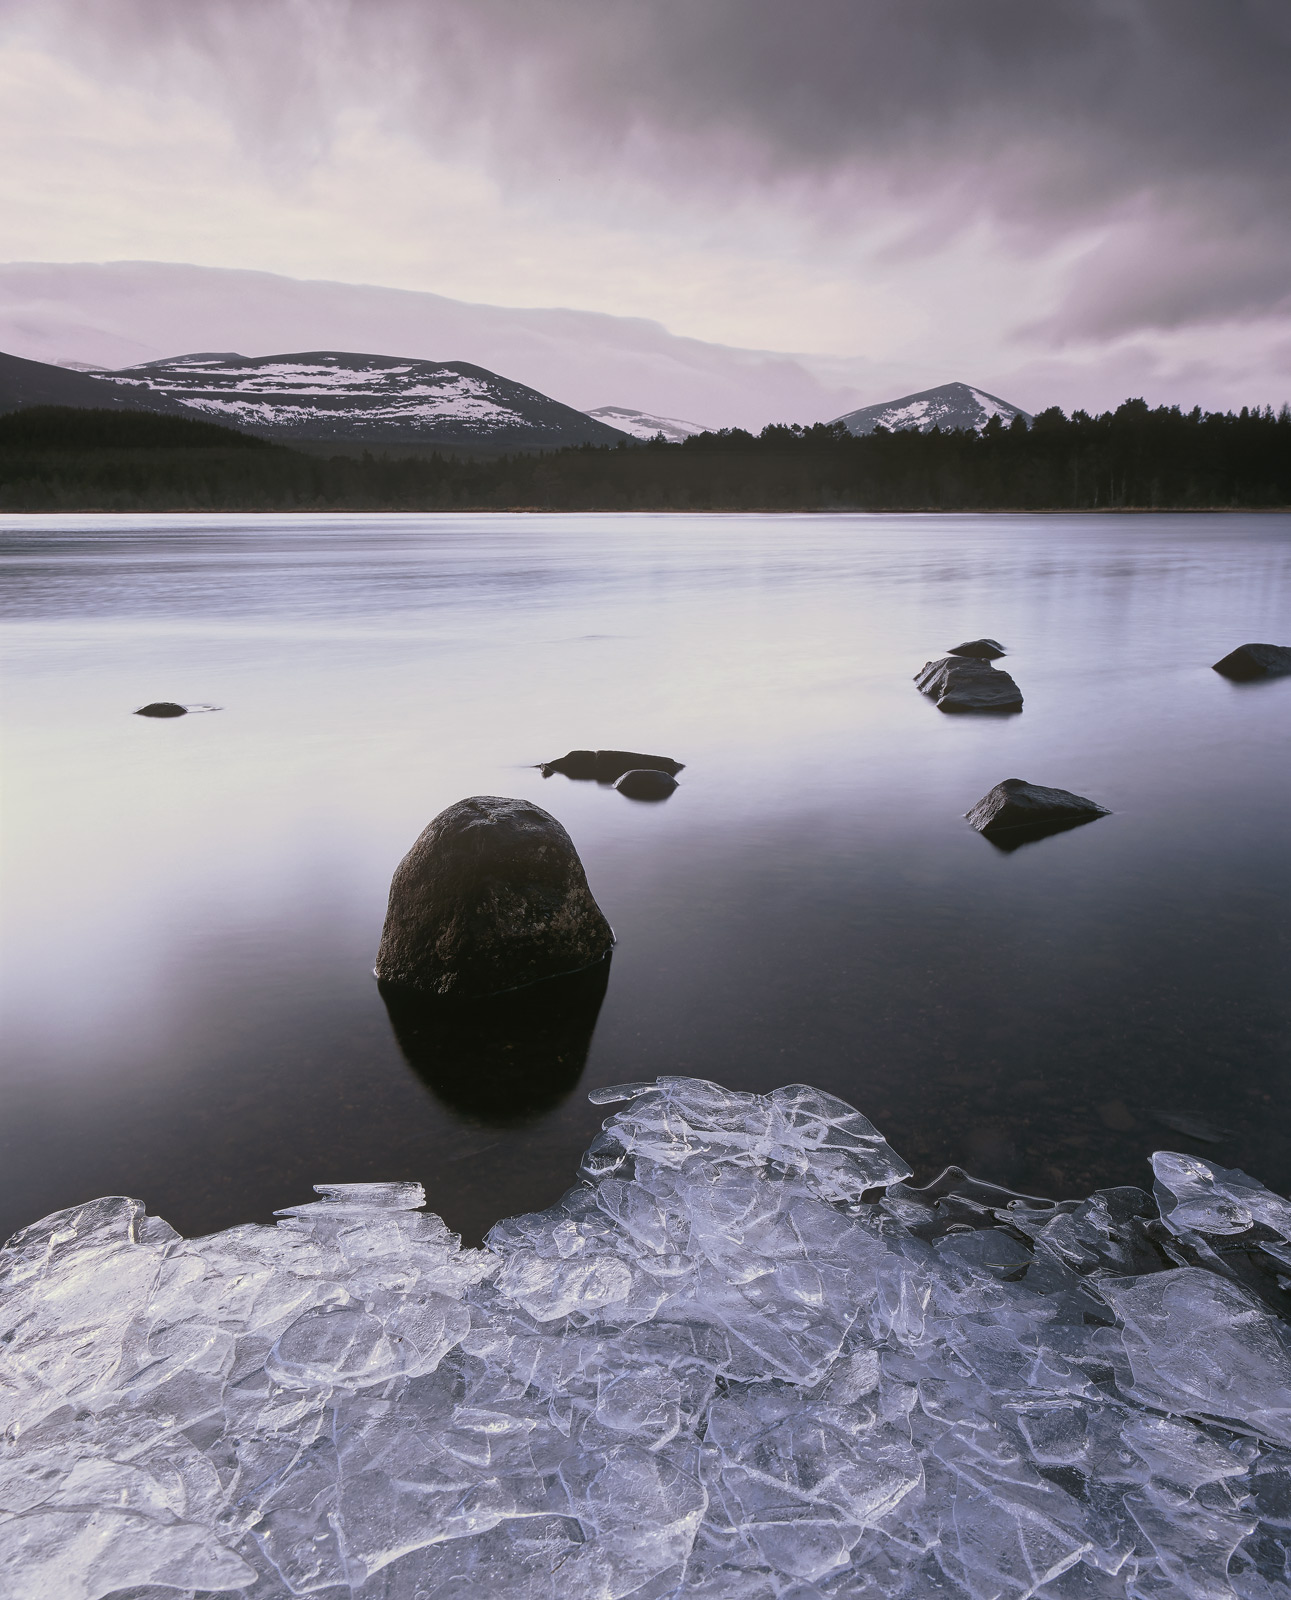 Thin layers of sheet ice had frozen over the shoreline of Loch Morlich on a cold and steely blue winter morning. However...